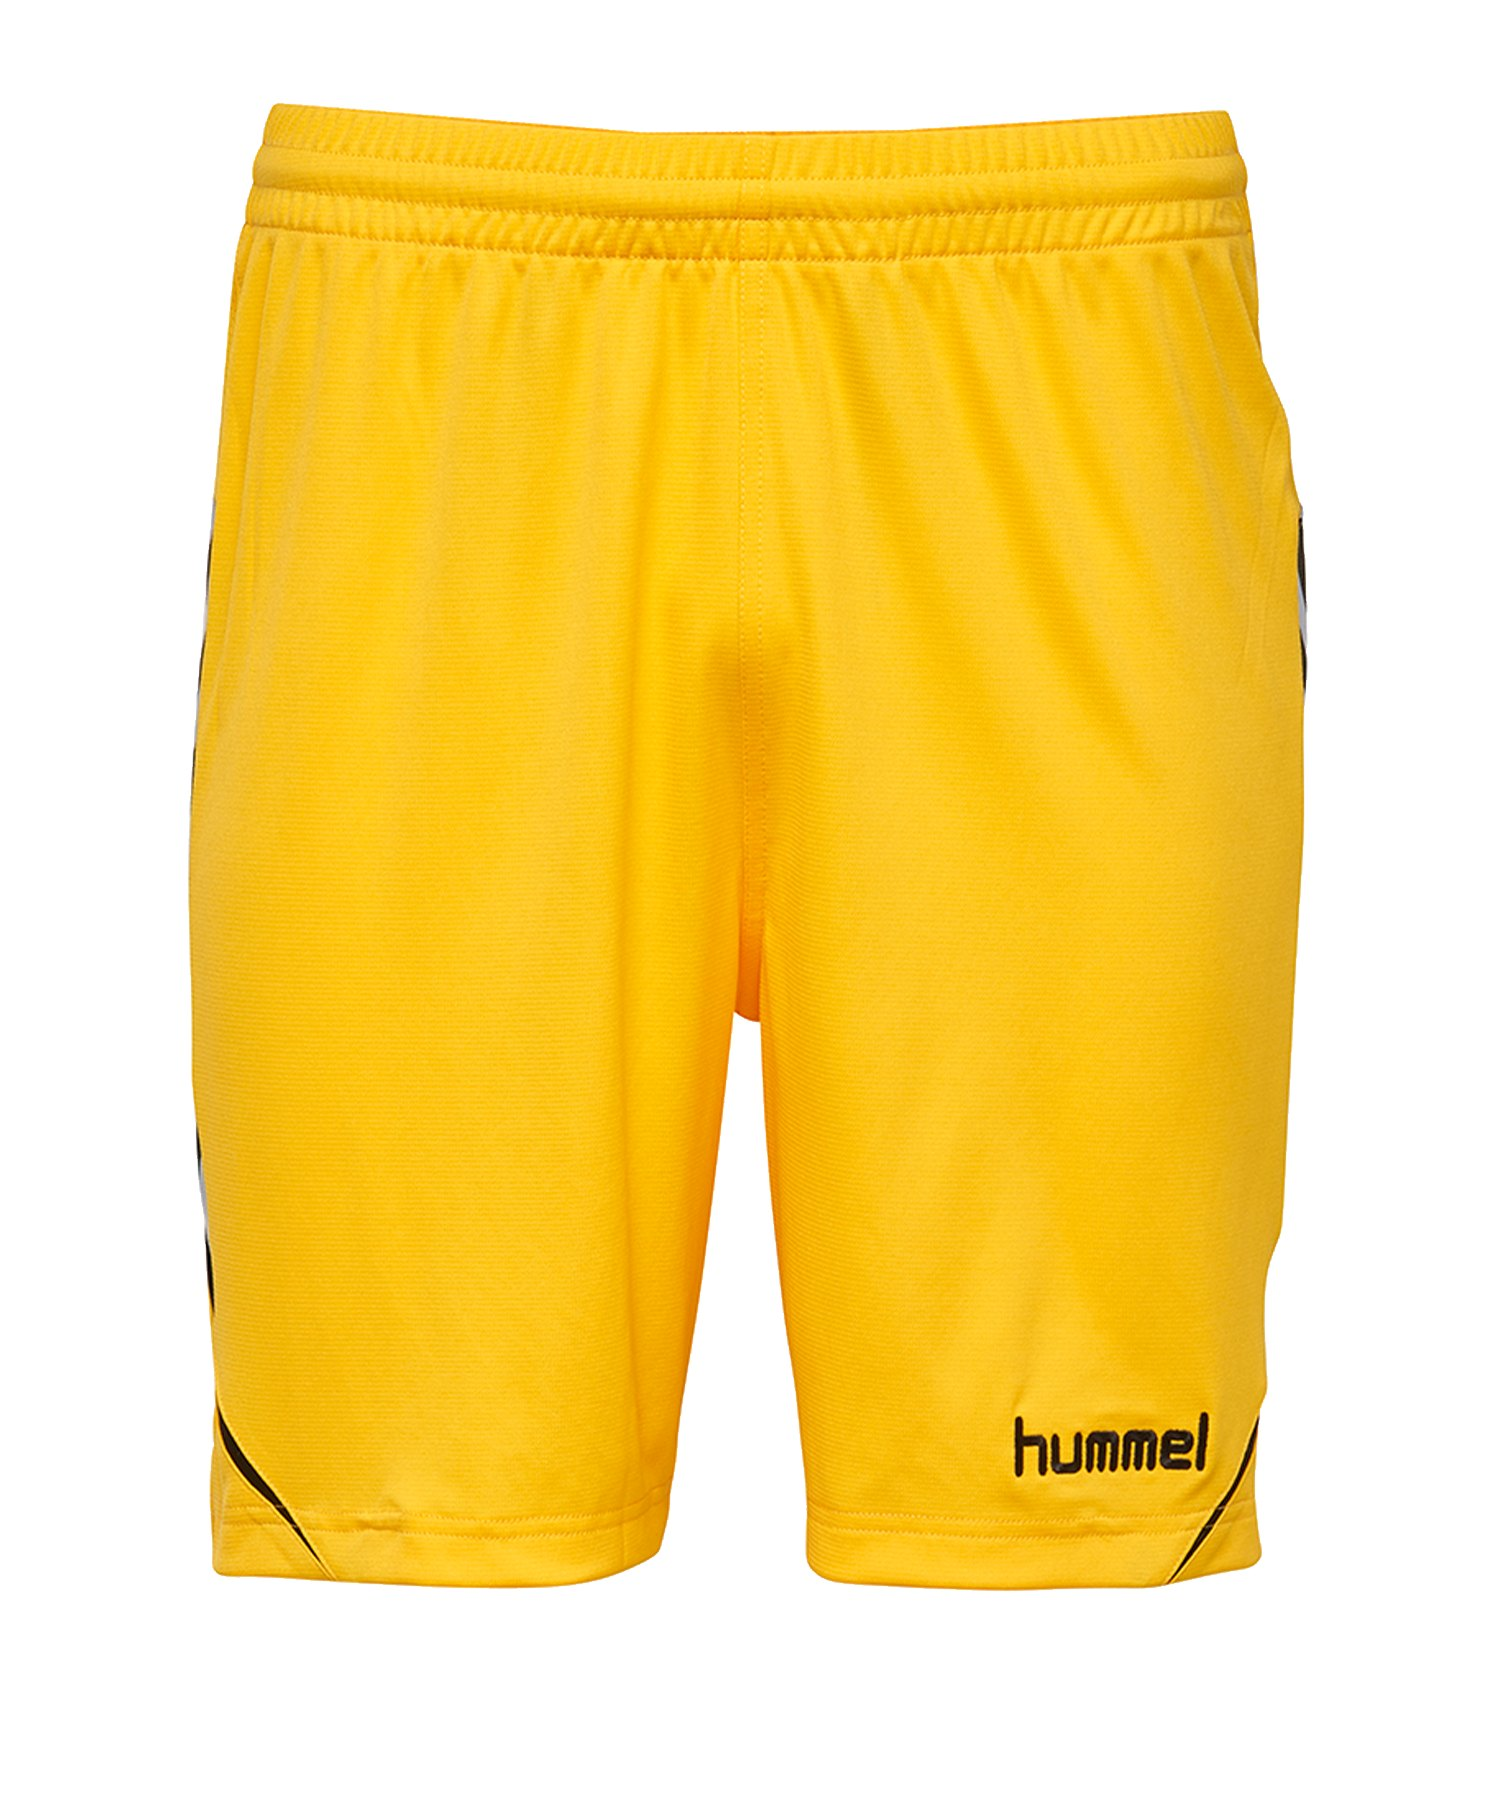 Hummel Authentic Charge Shorts Kids Gelb F5001 - Gelb